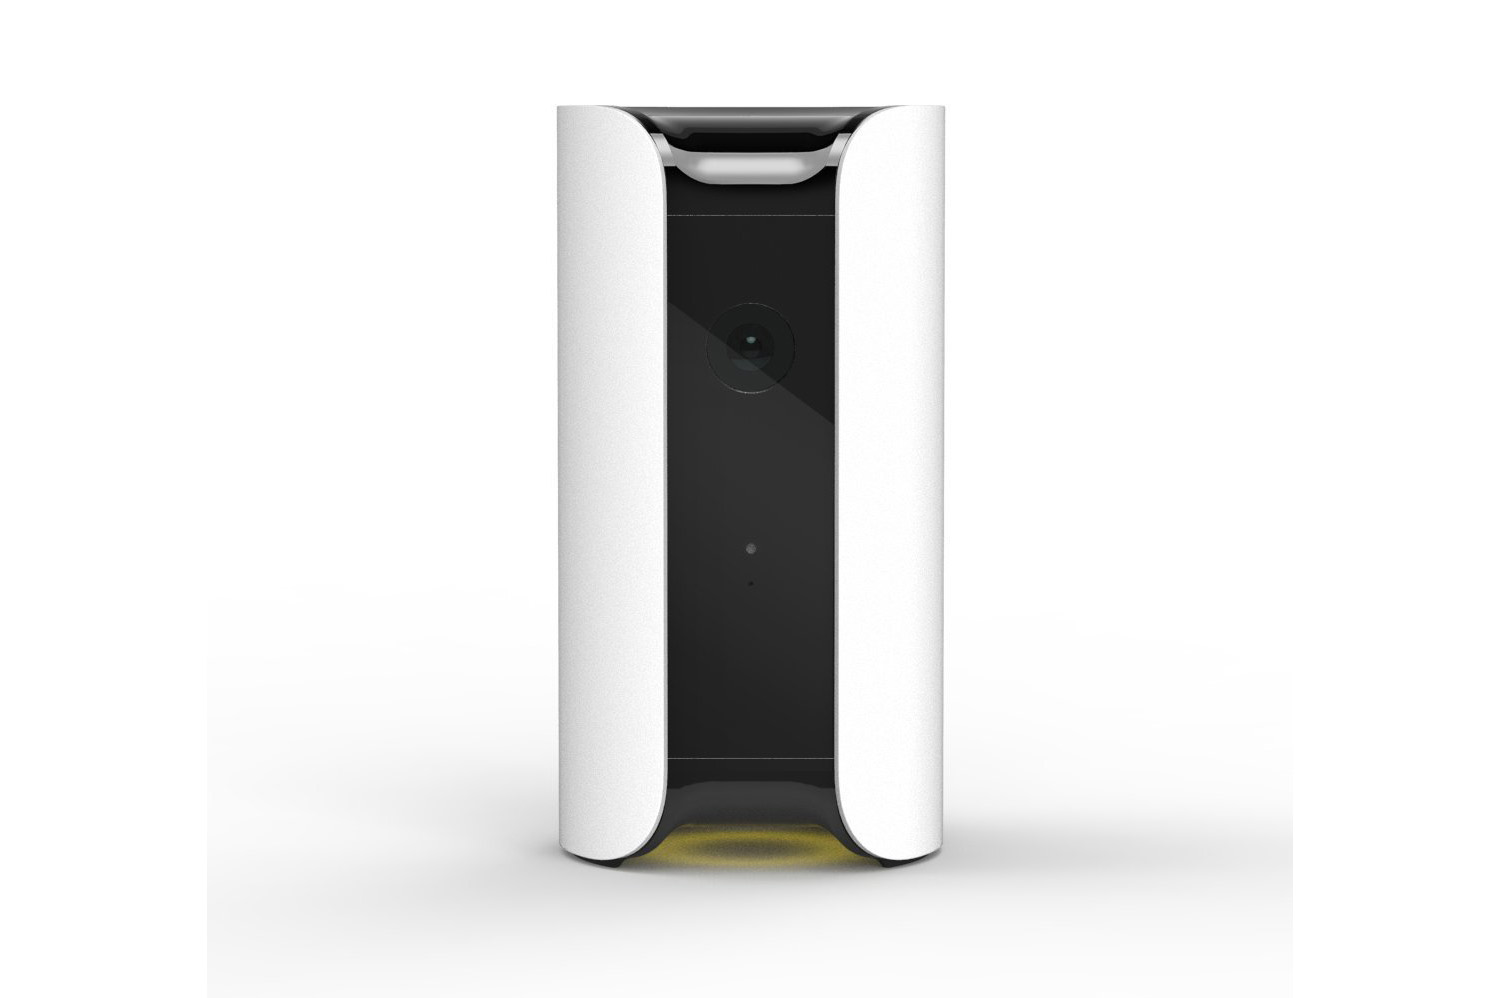 canary-all-in-one-home-security-device